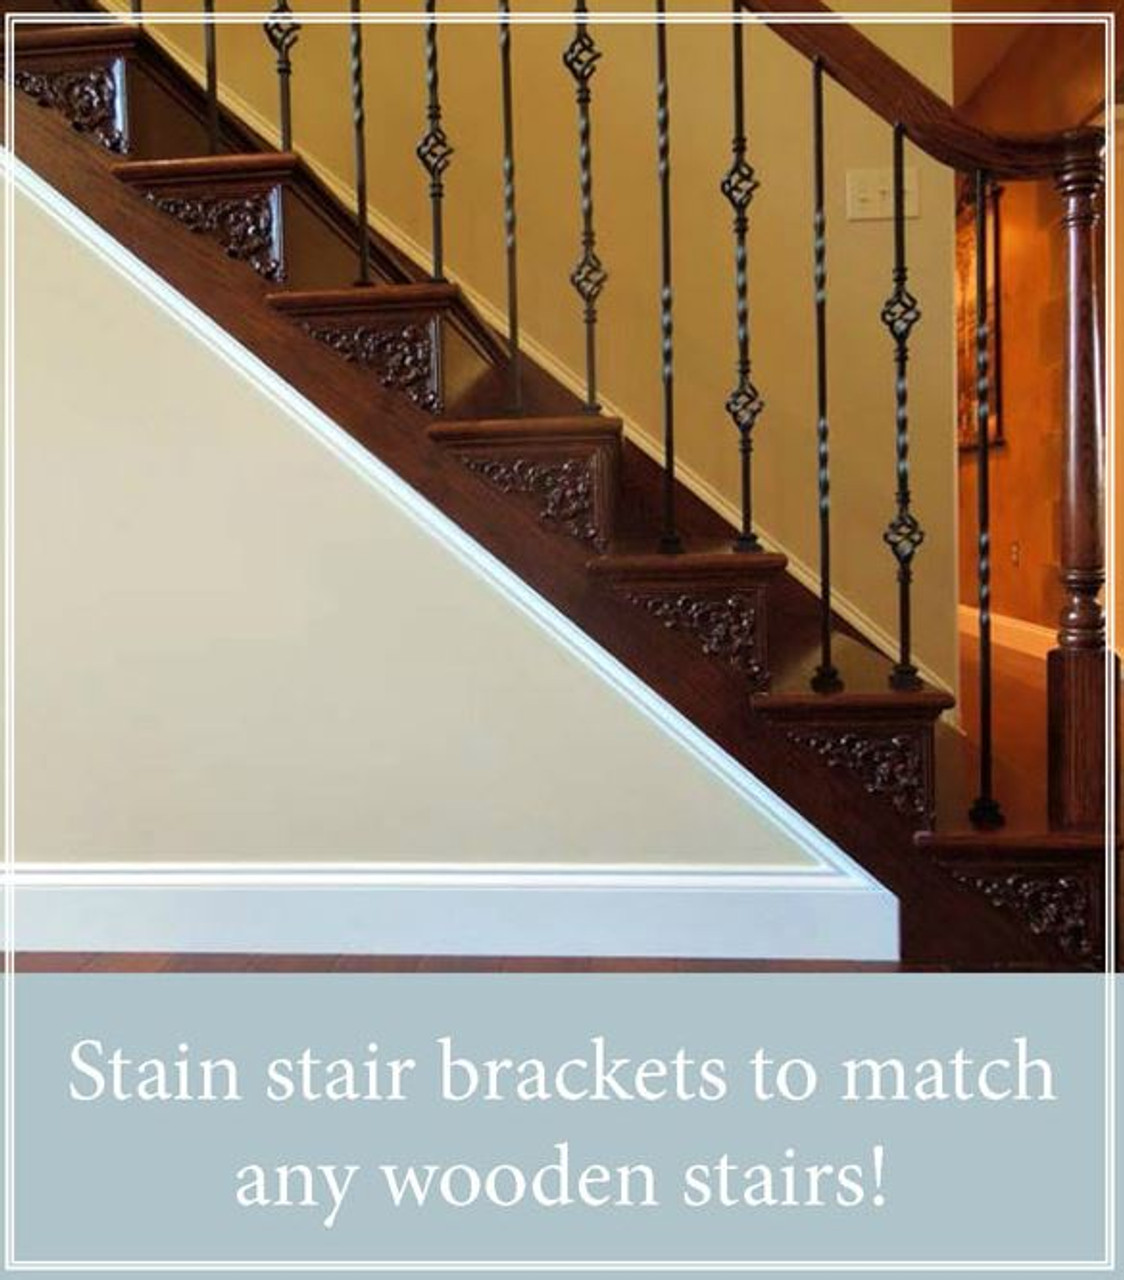 Stair Brackets can be painted or stained to match hardwood millwork